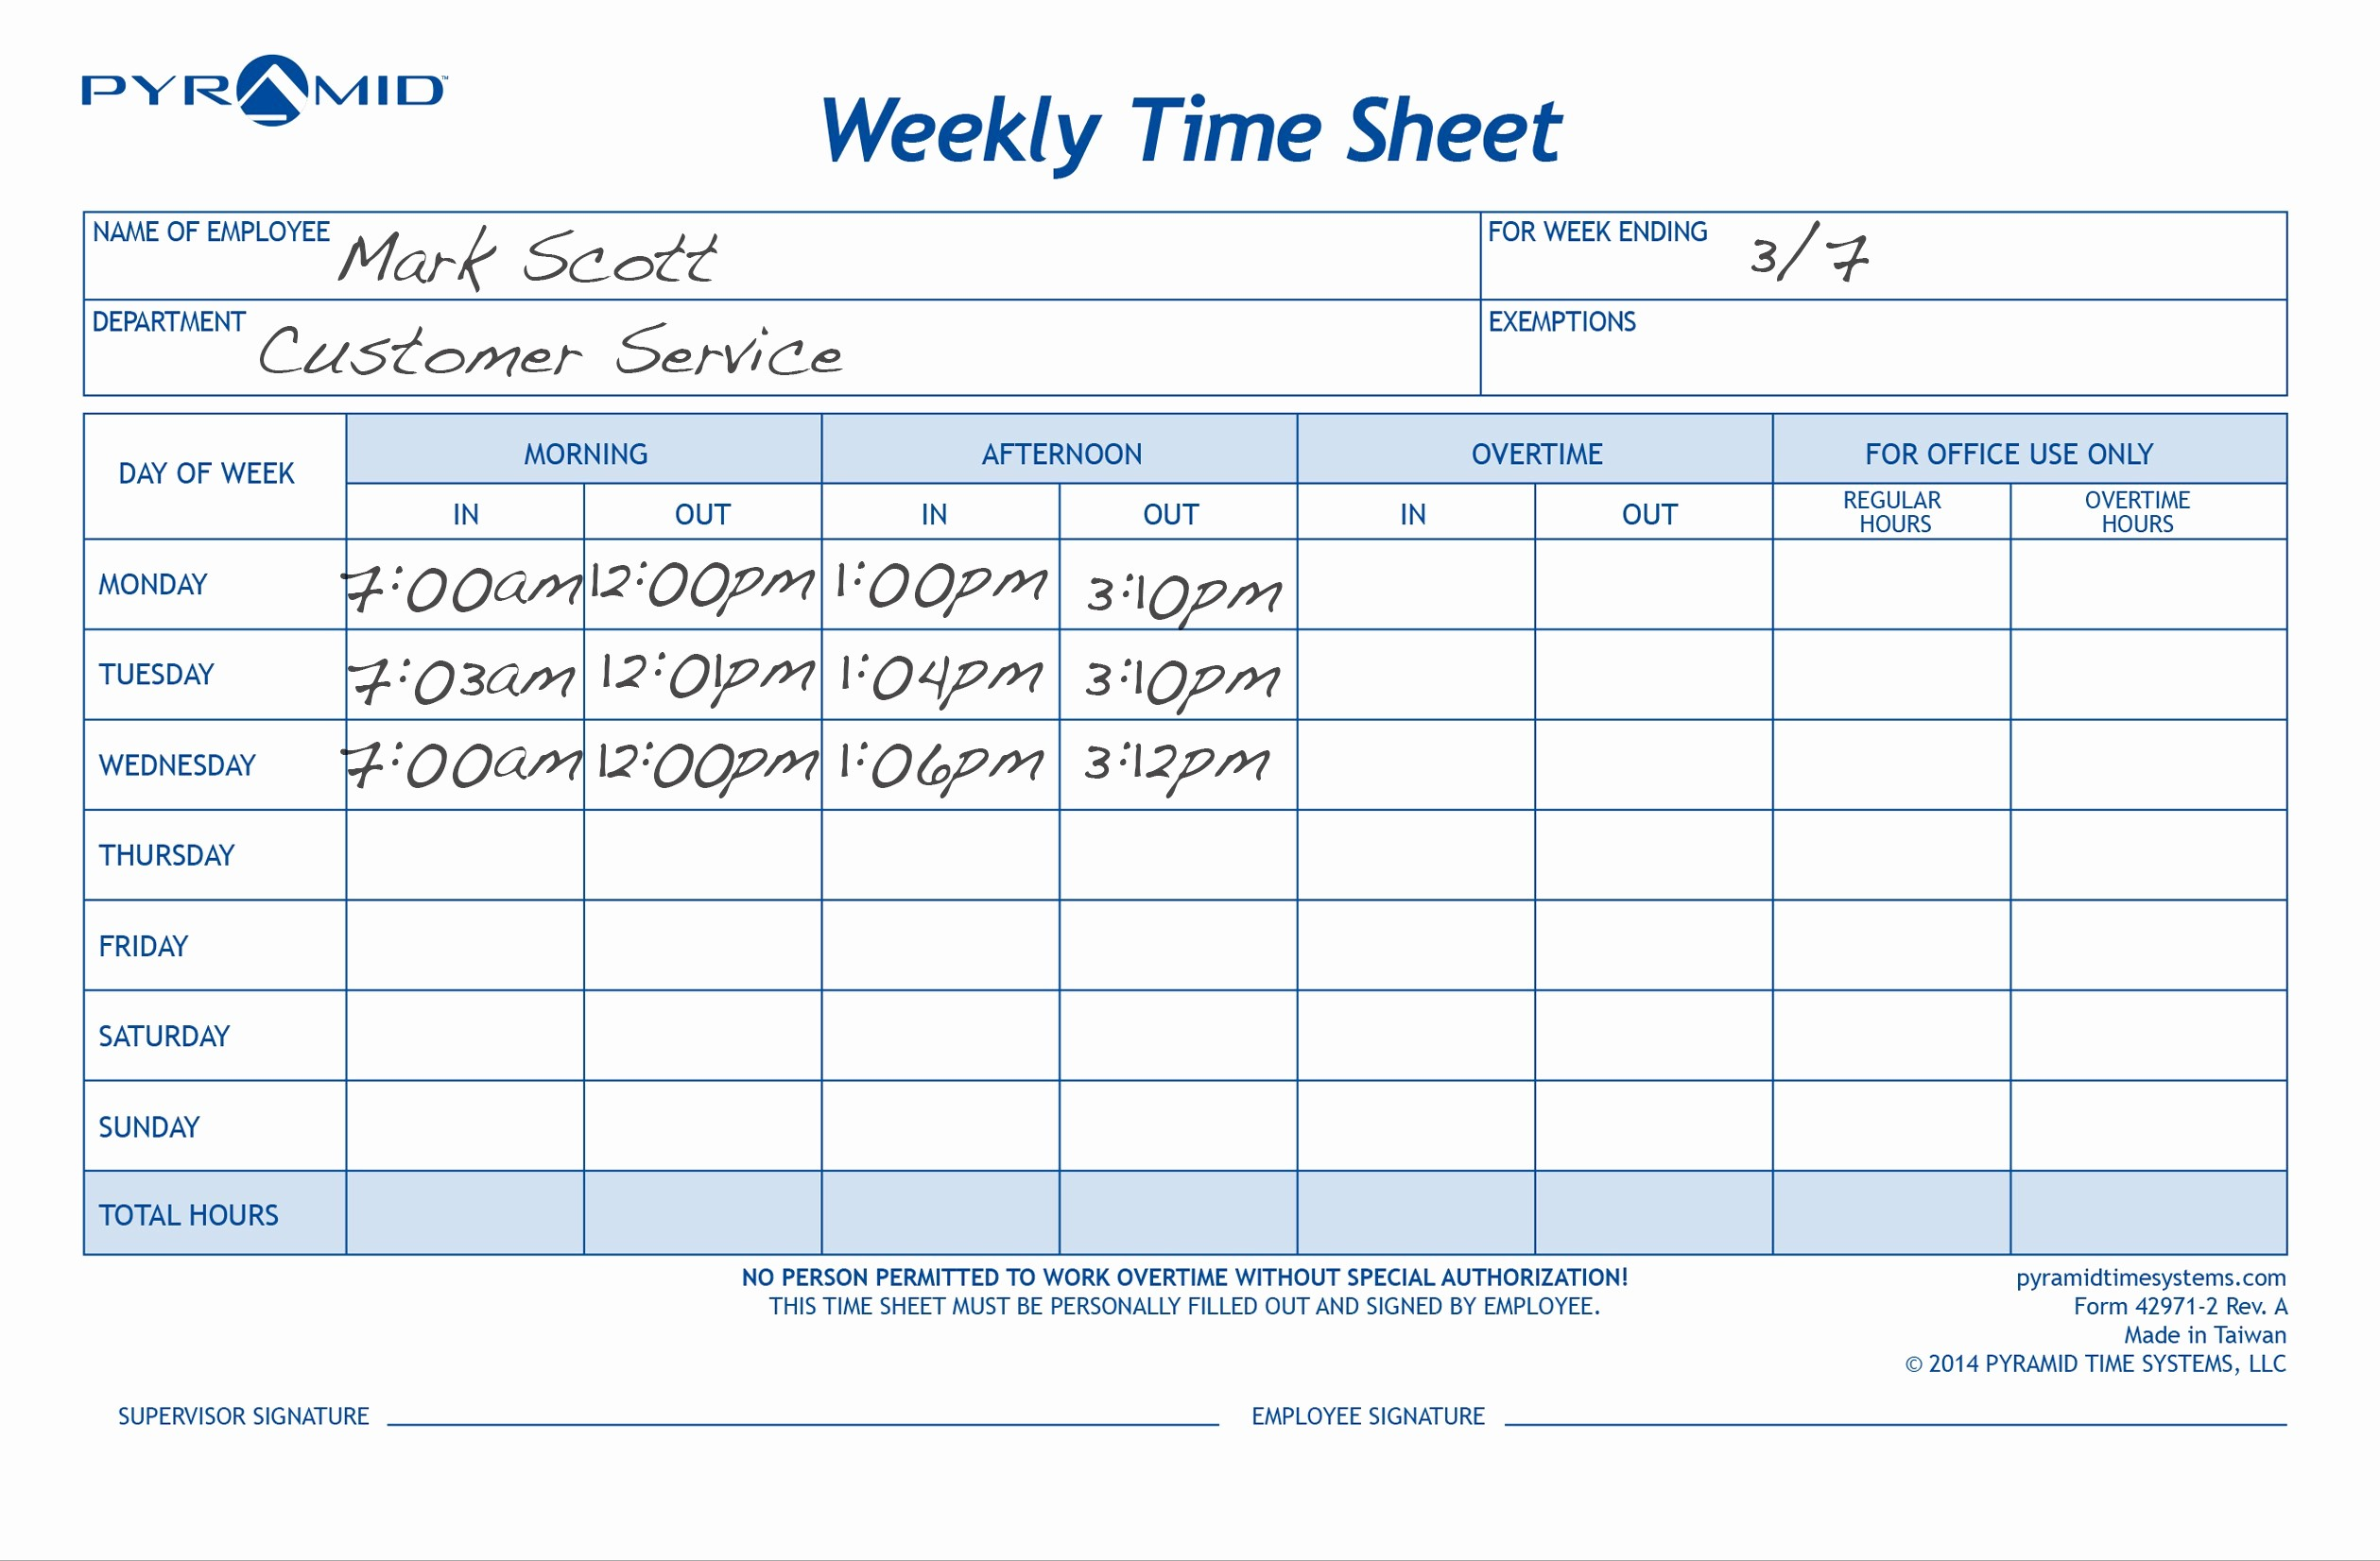 Clock In and Out Timesheet Luxury Timesheet Clock Timeline Spreadshee Timesheet Clockwise